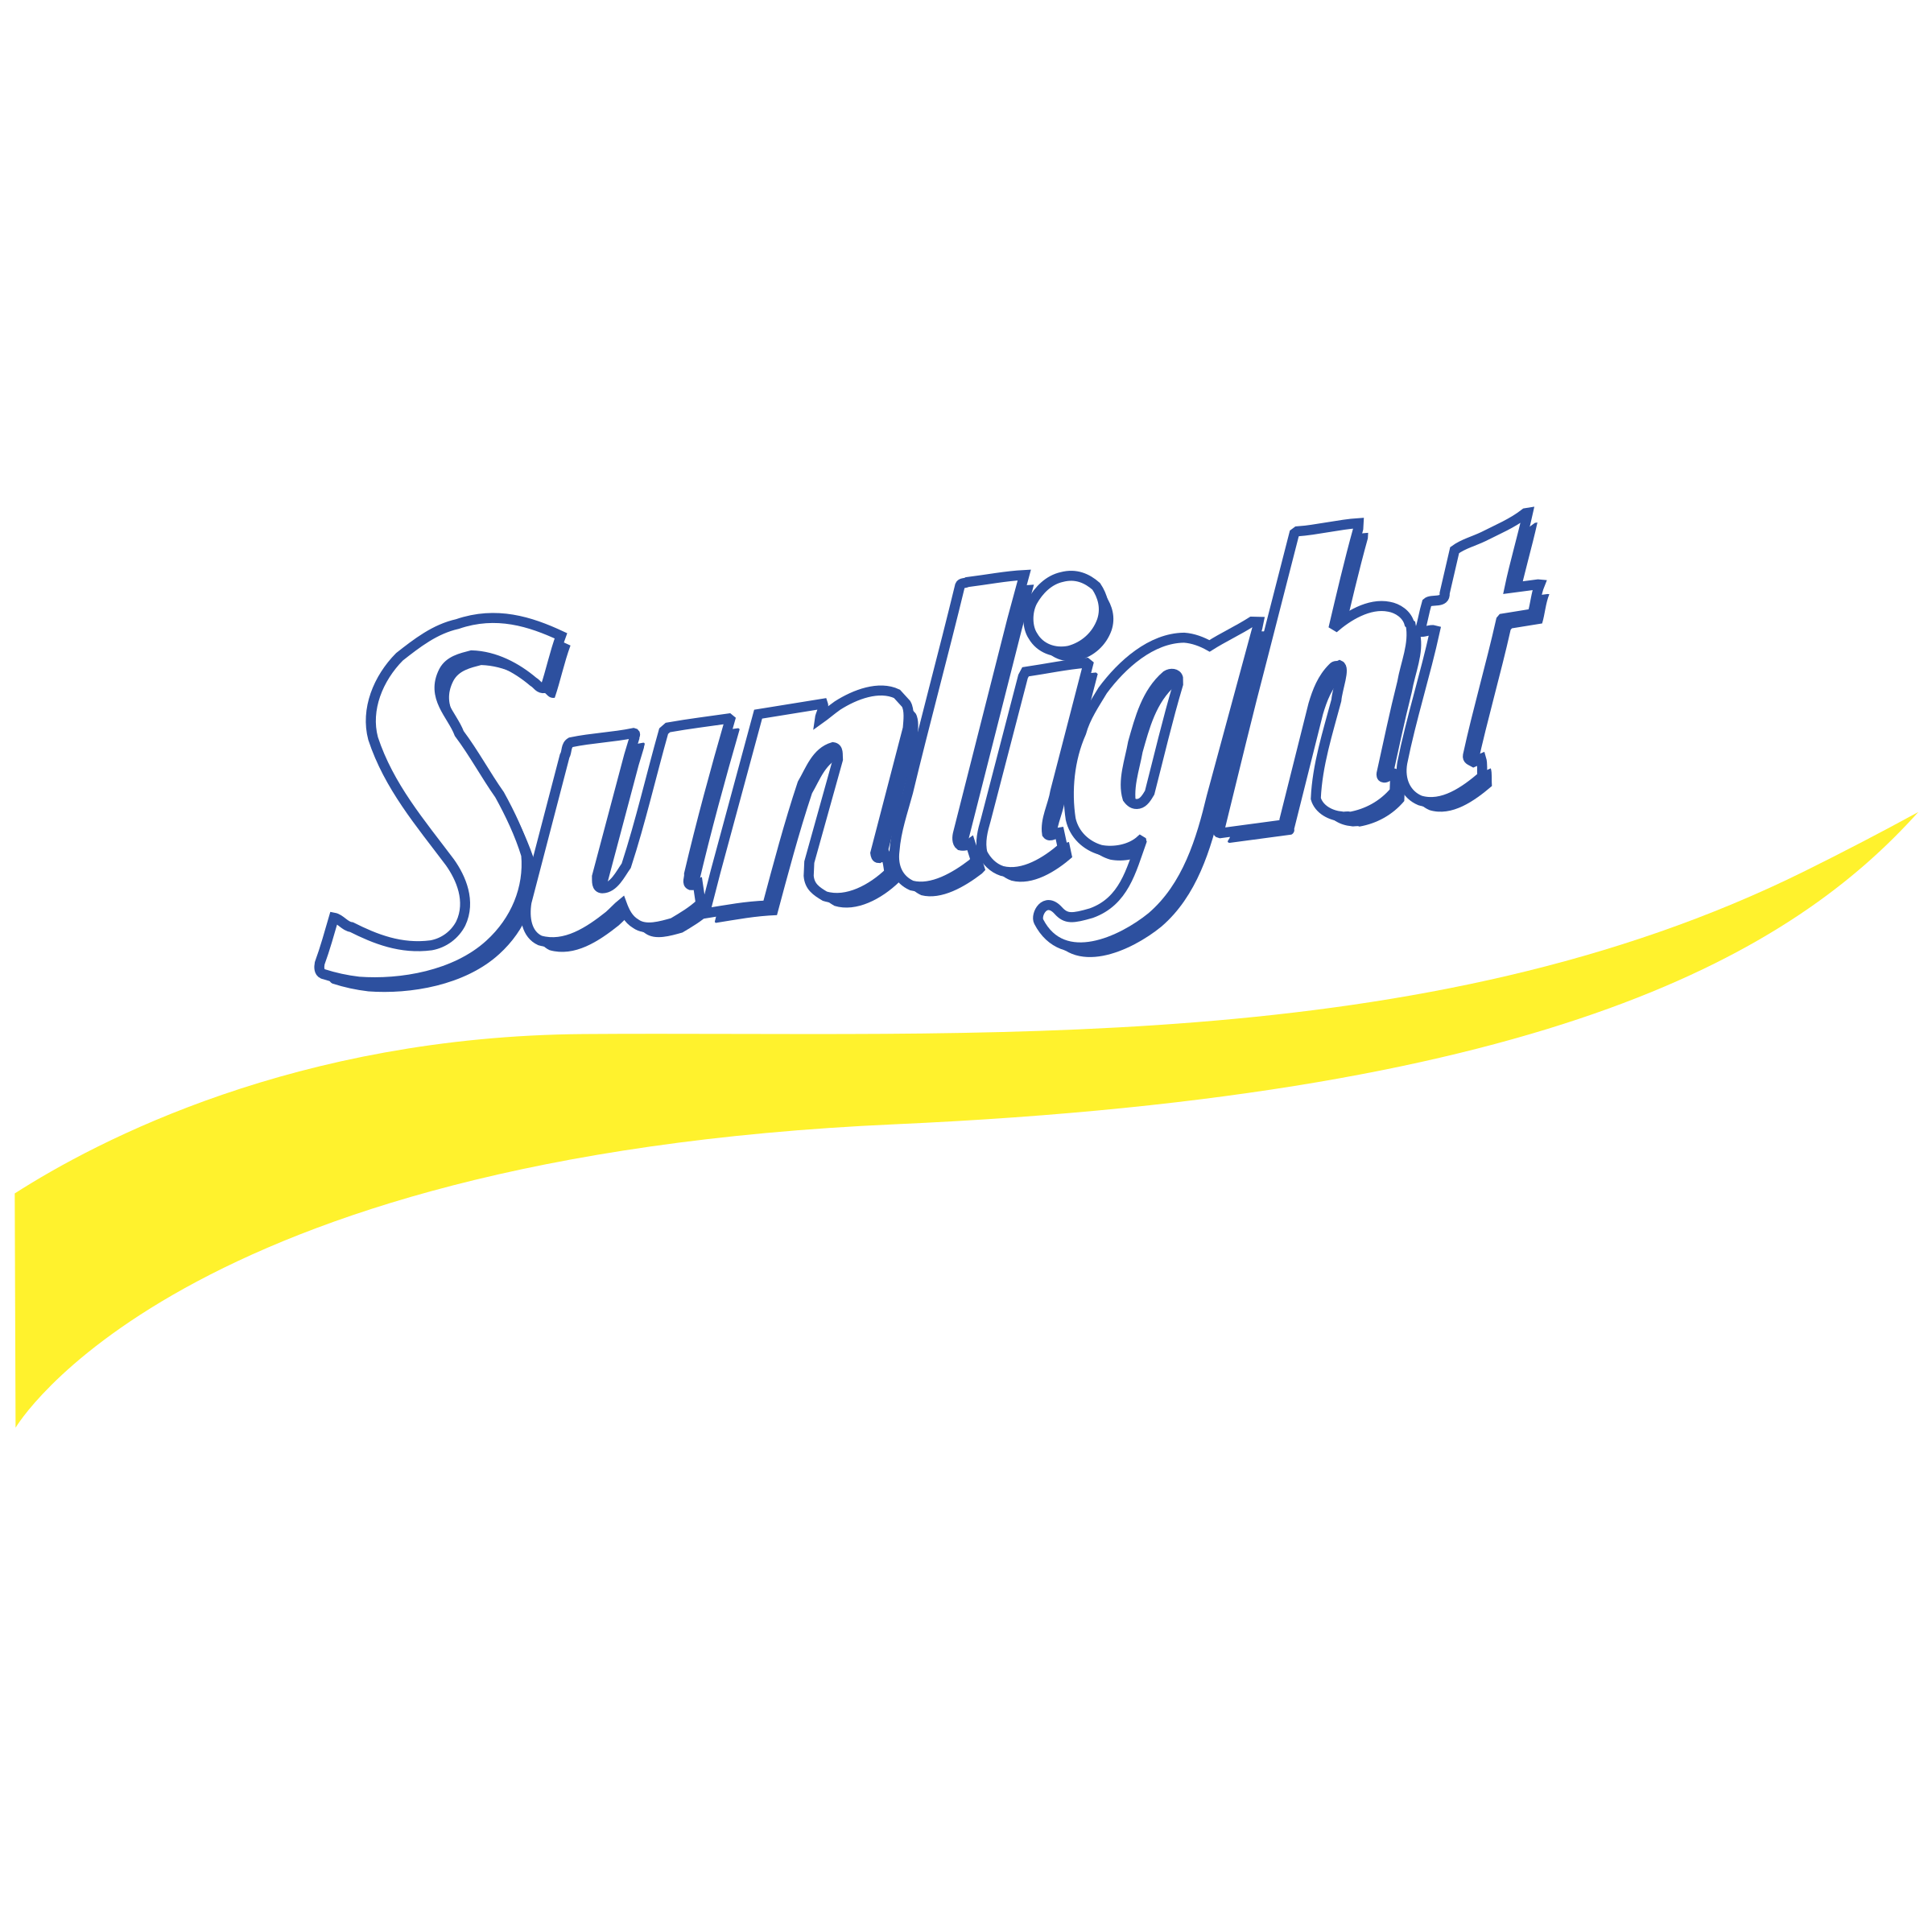 Sunlight Logo PNG Transparent & SVG Vector.